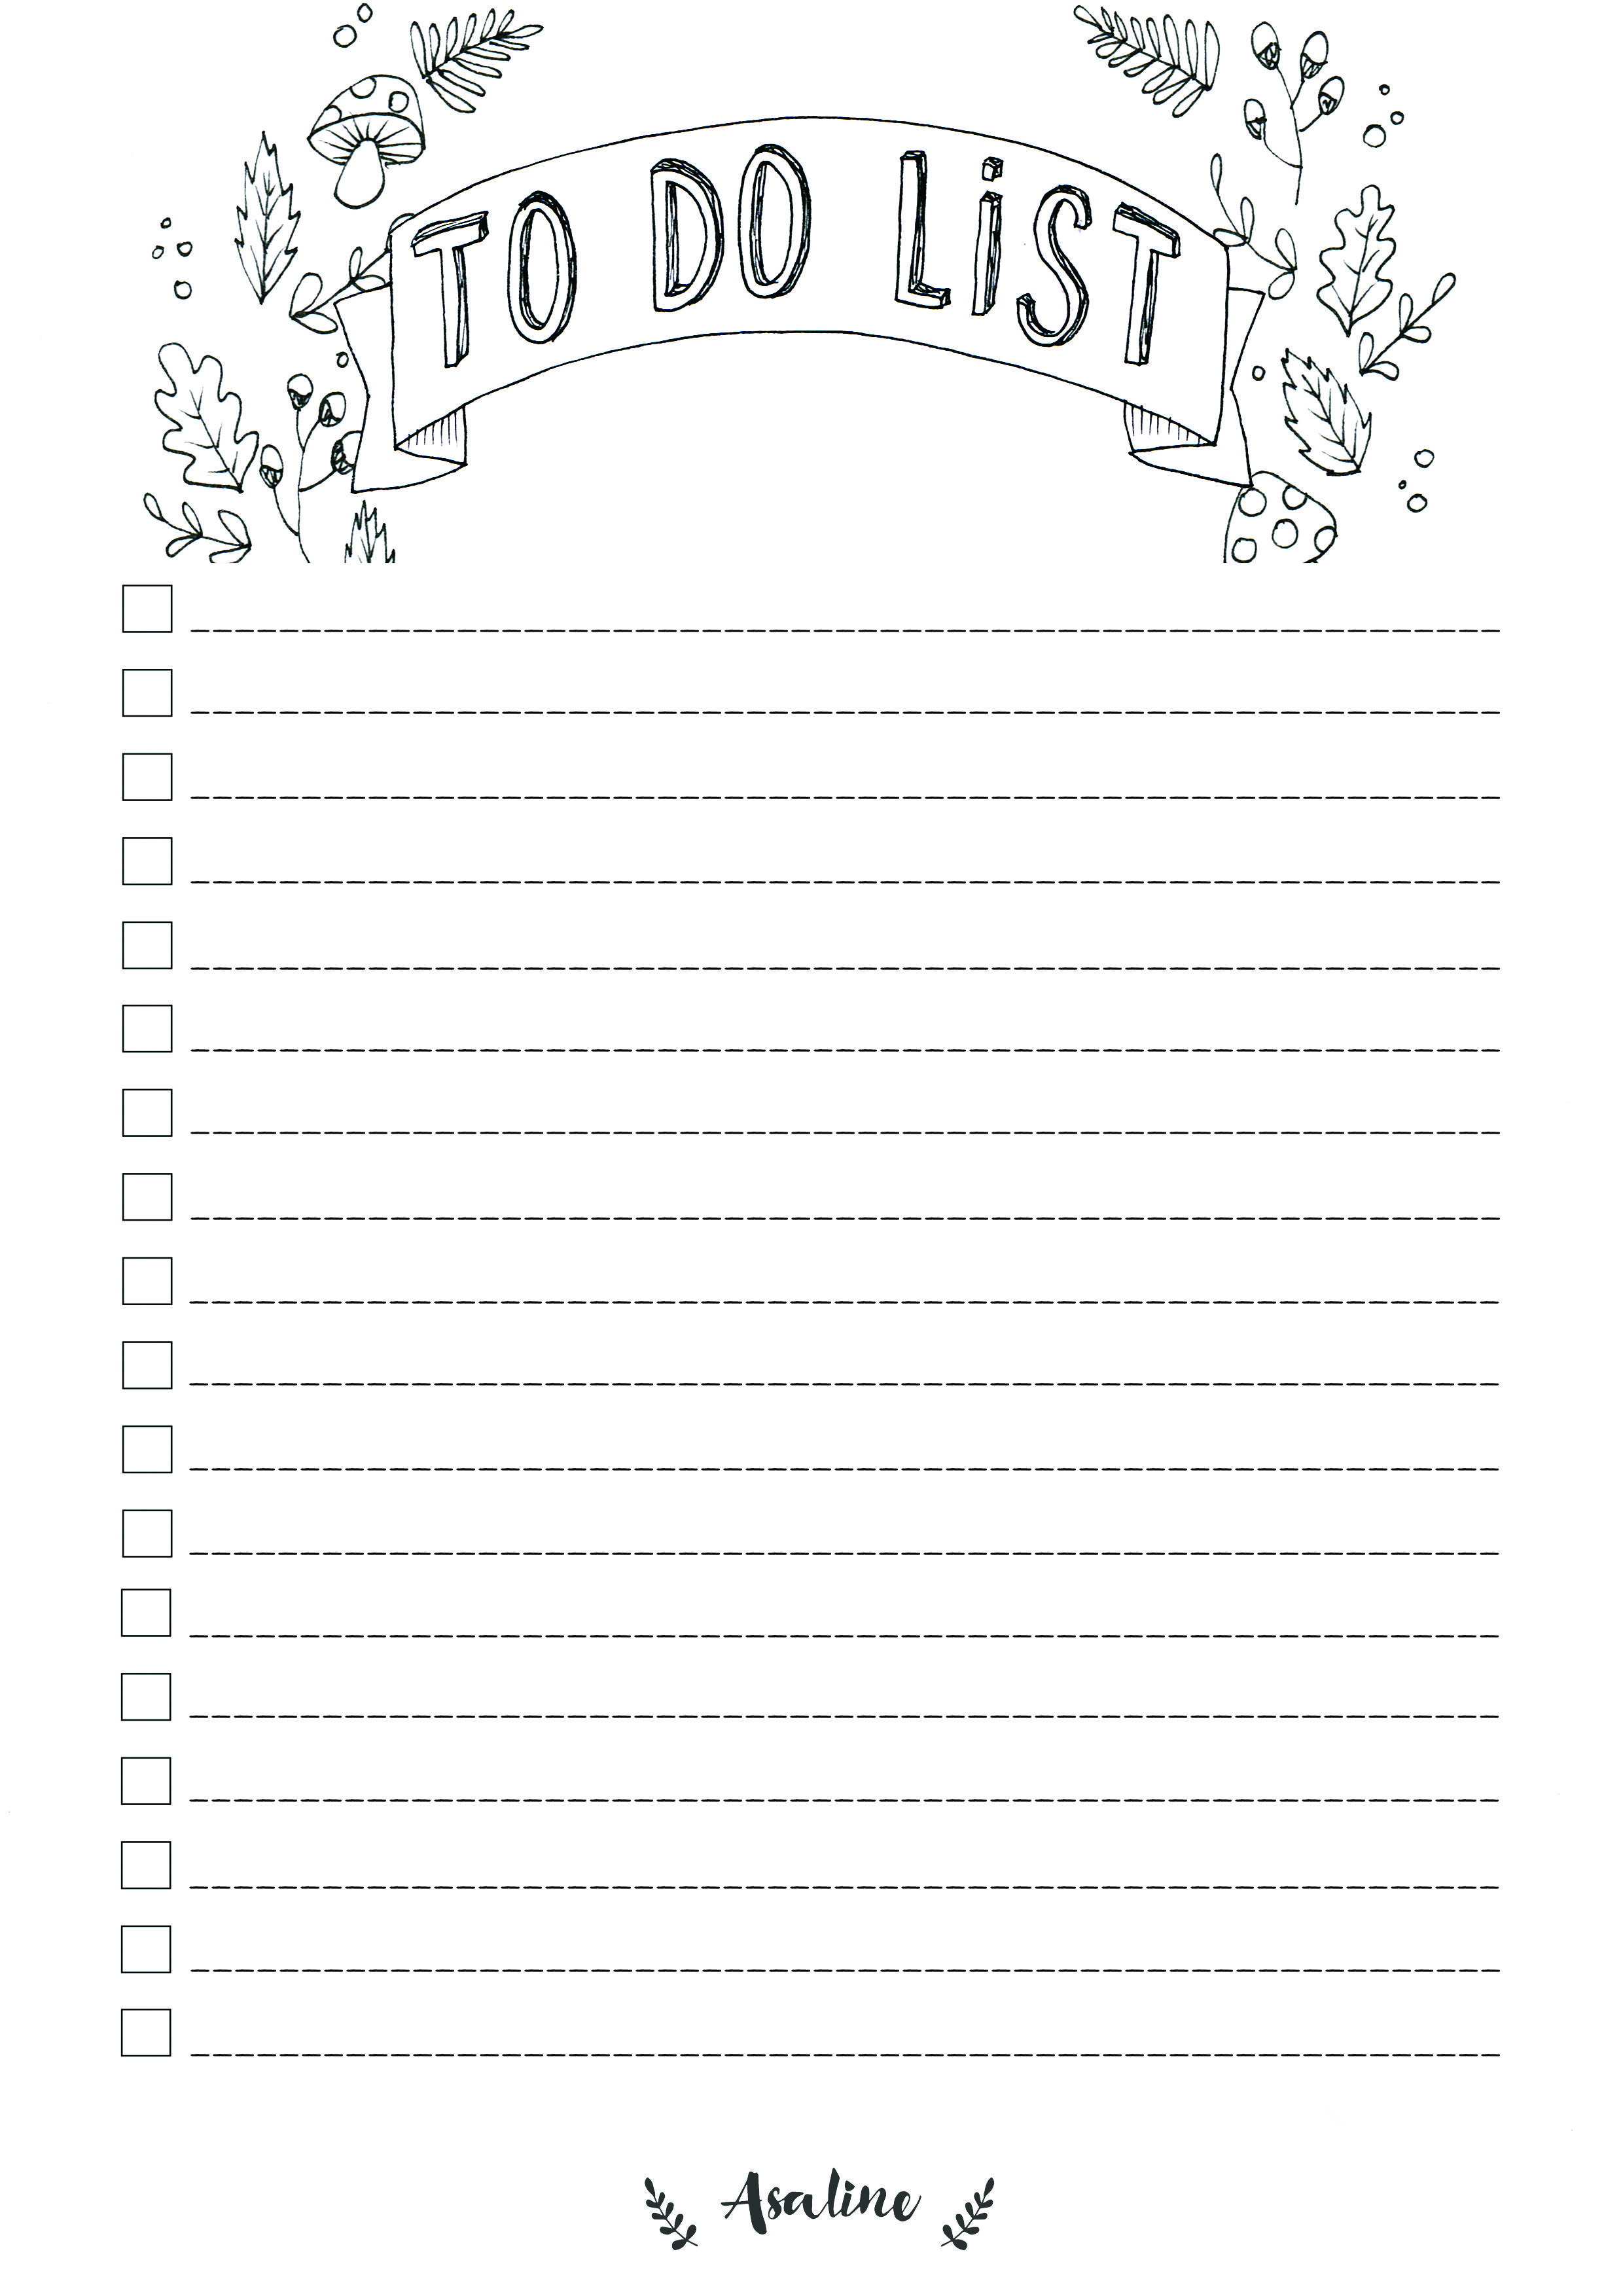 Exceptionnel ASALINE-ILLUSTRATIONS-to-do-list-gratuit-a-imprimer-free-printable  RR63